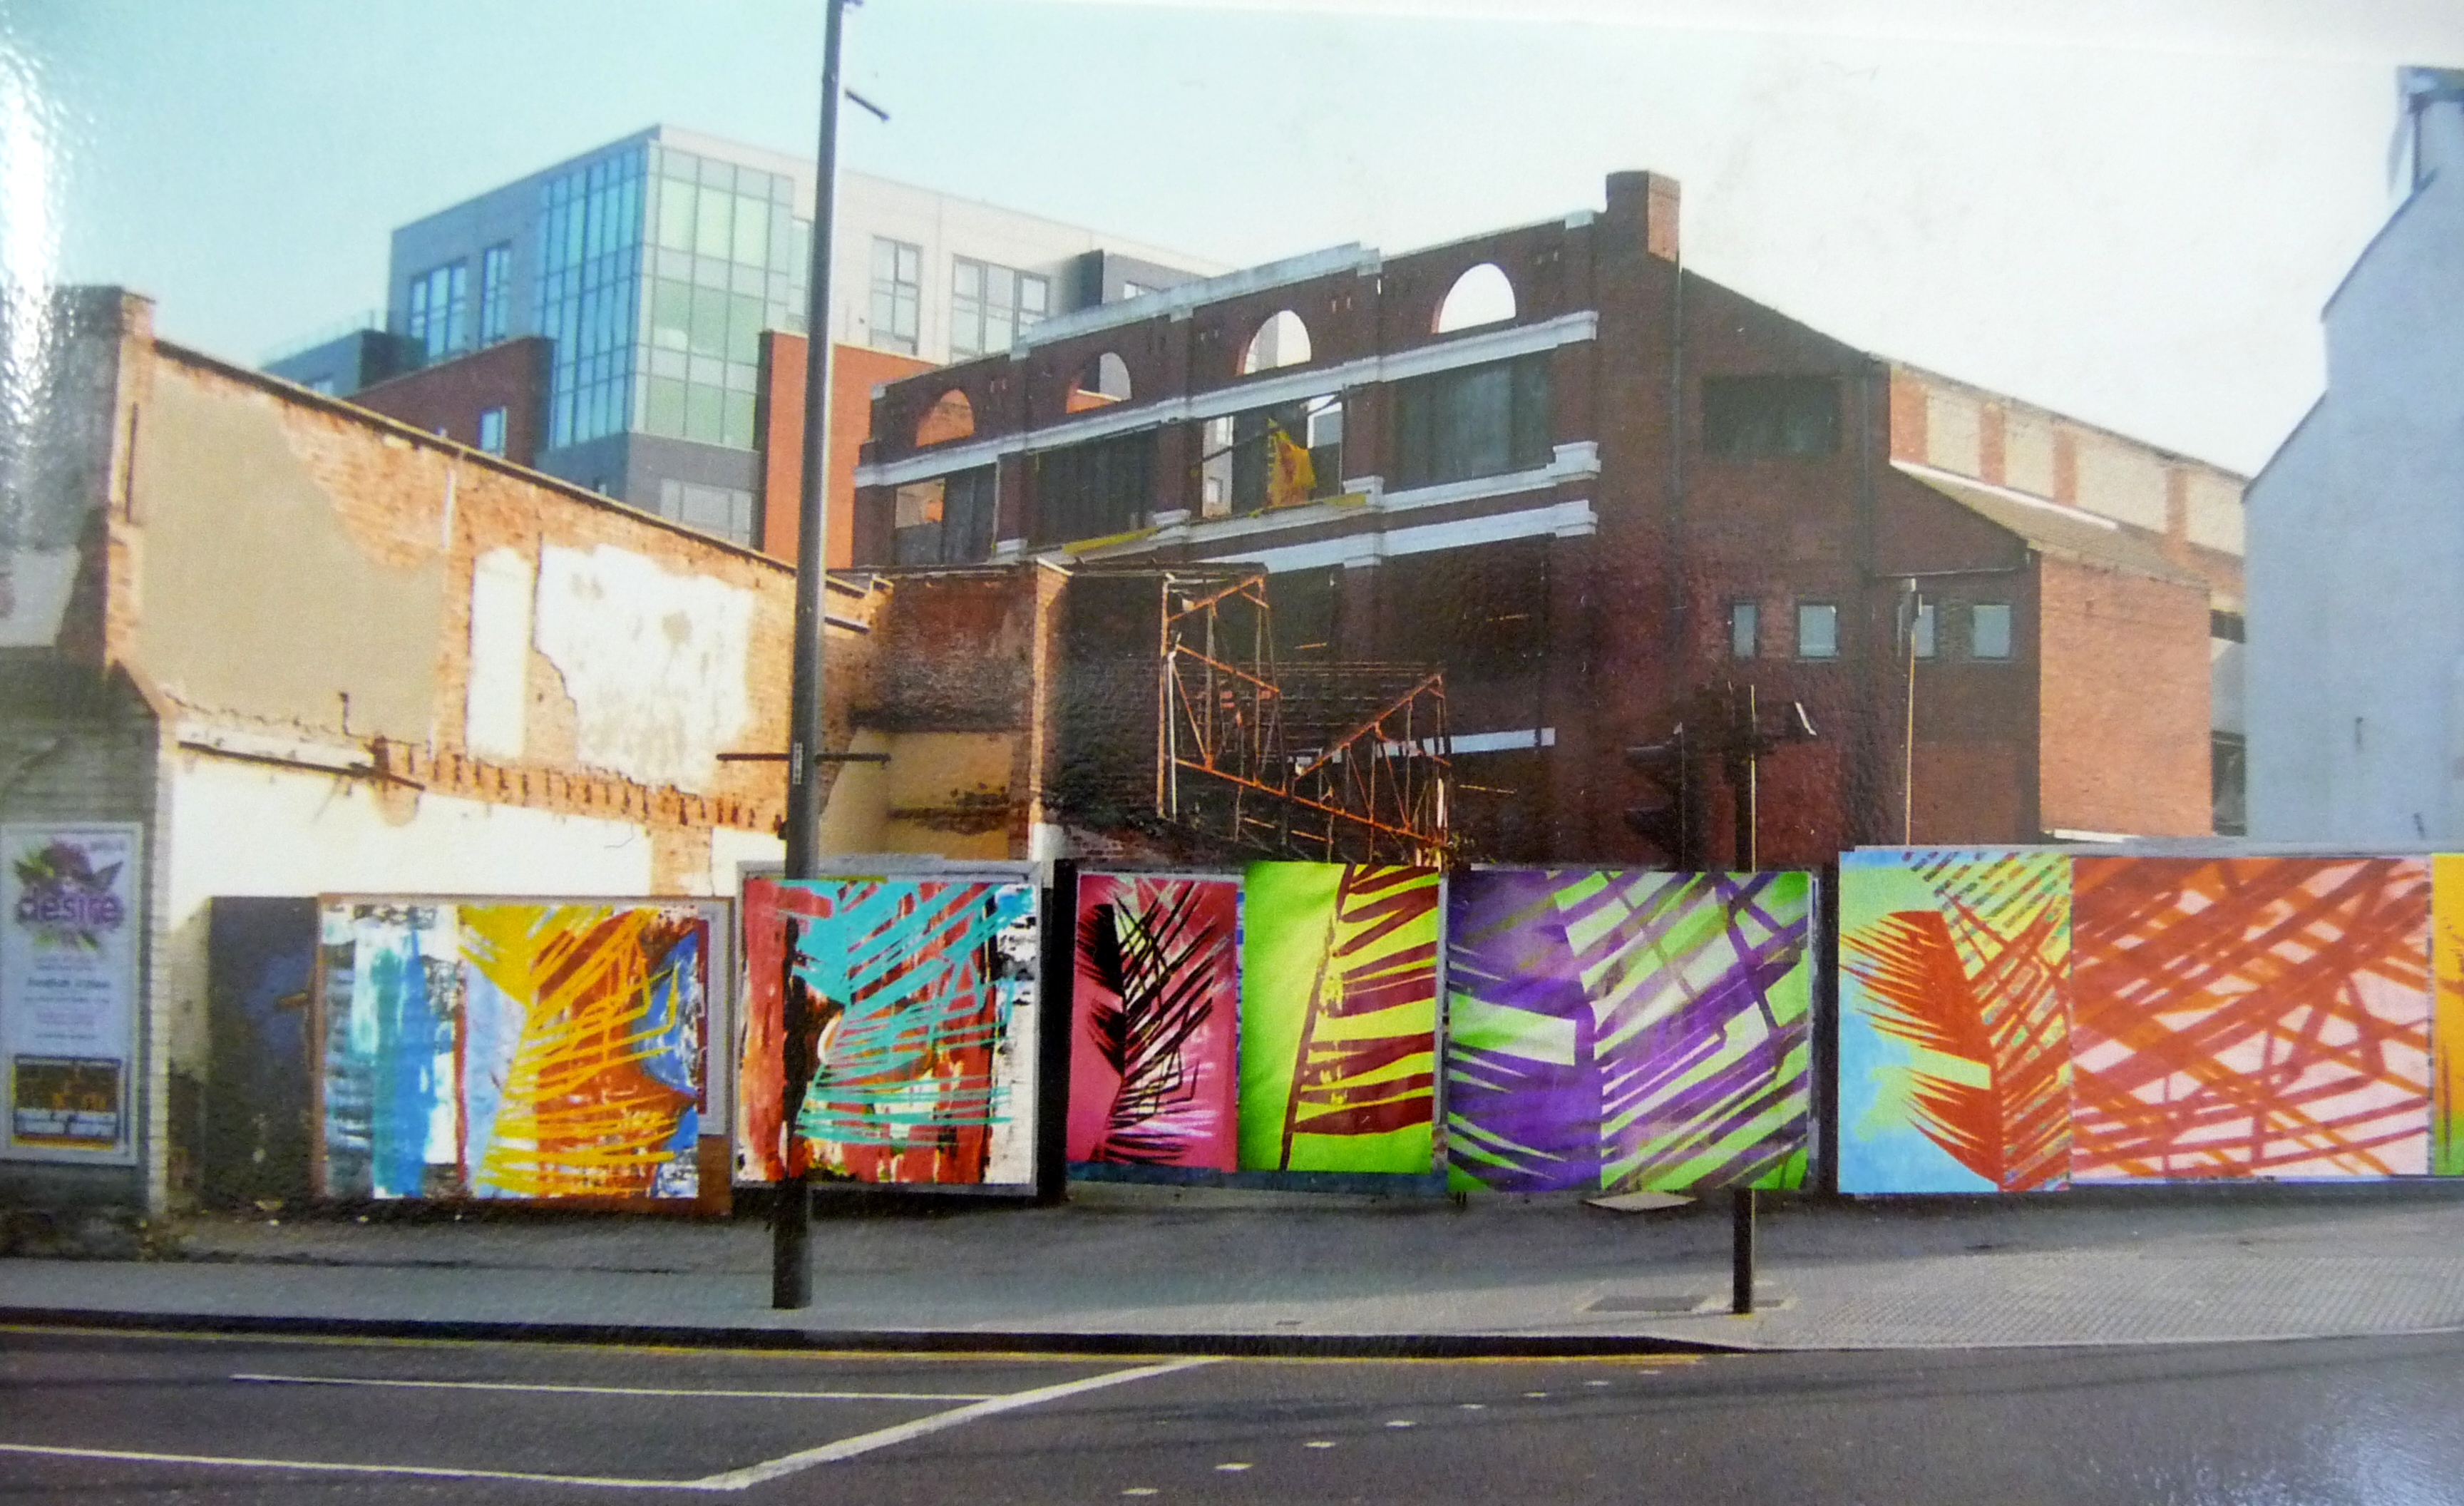 exhibition of screen printed textiles  with a background of urban decay in Liverpool by Christine Toh